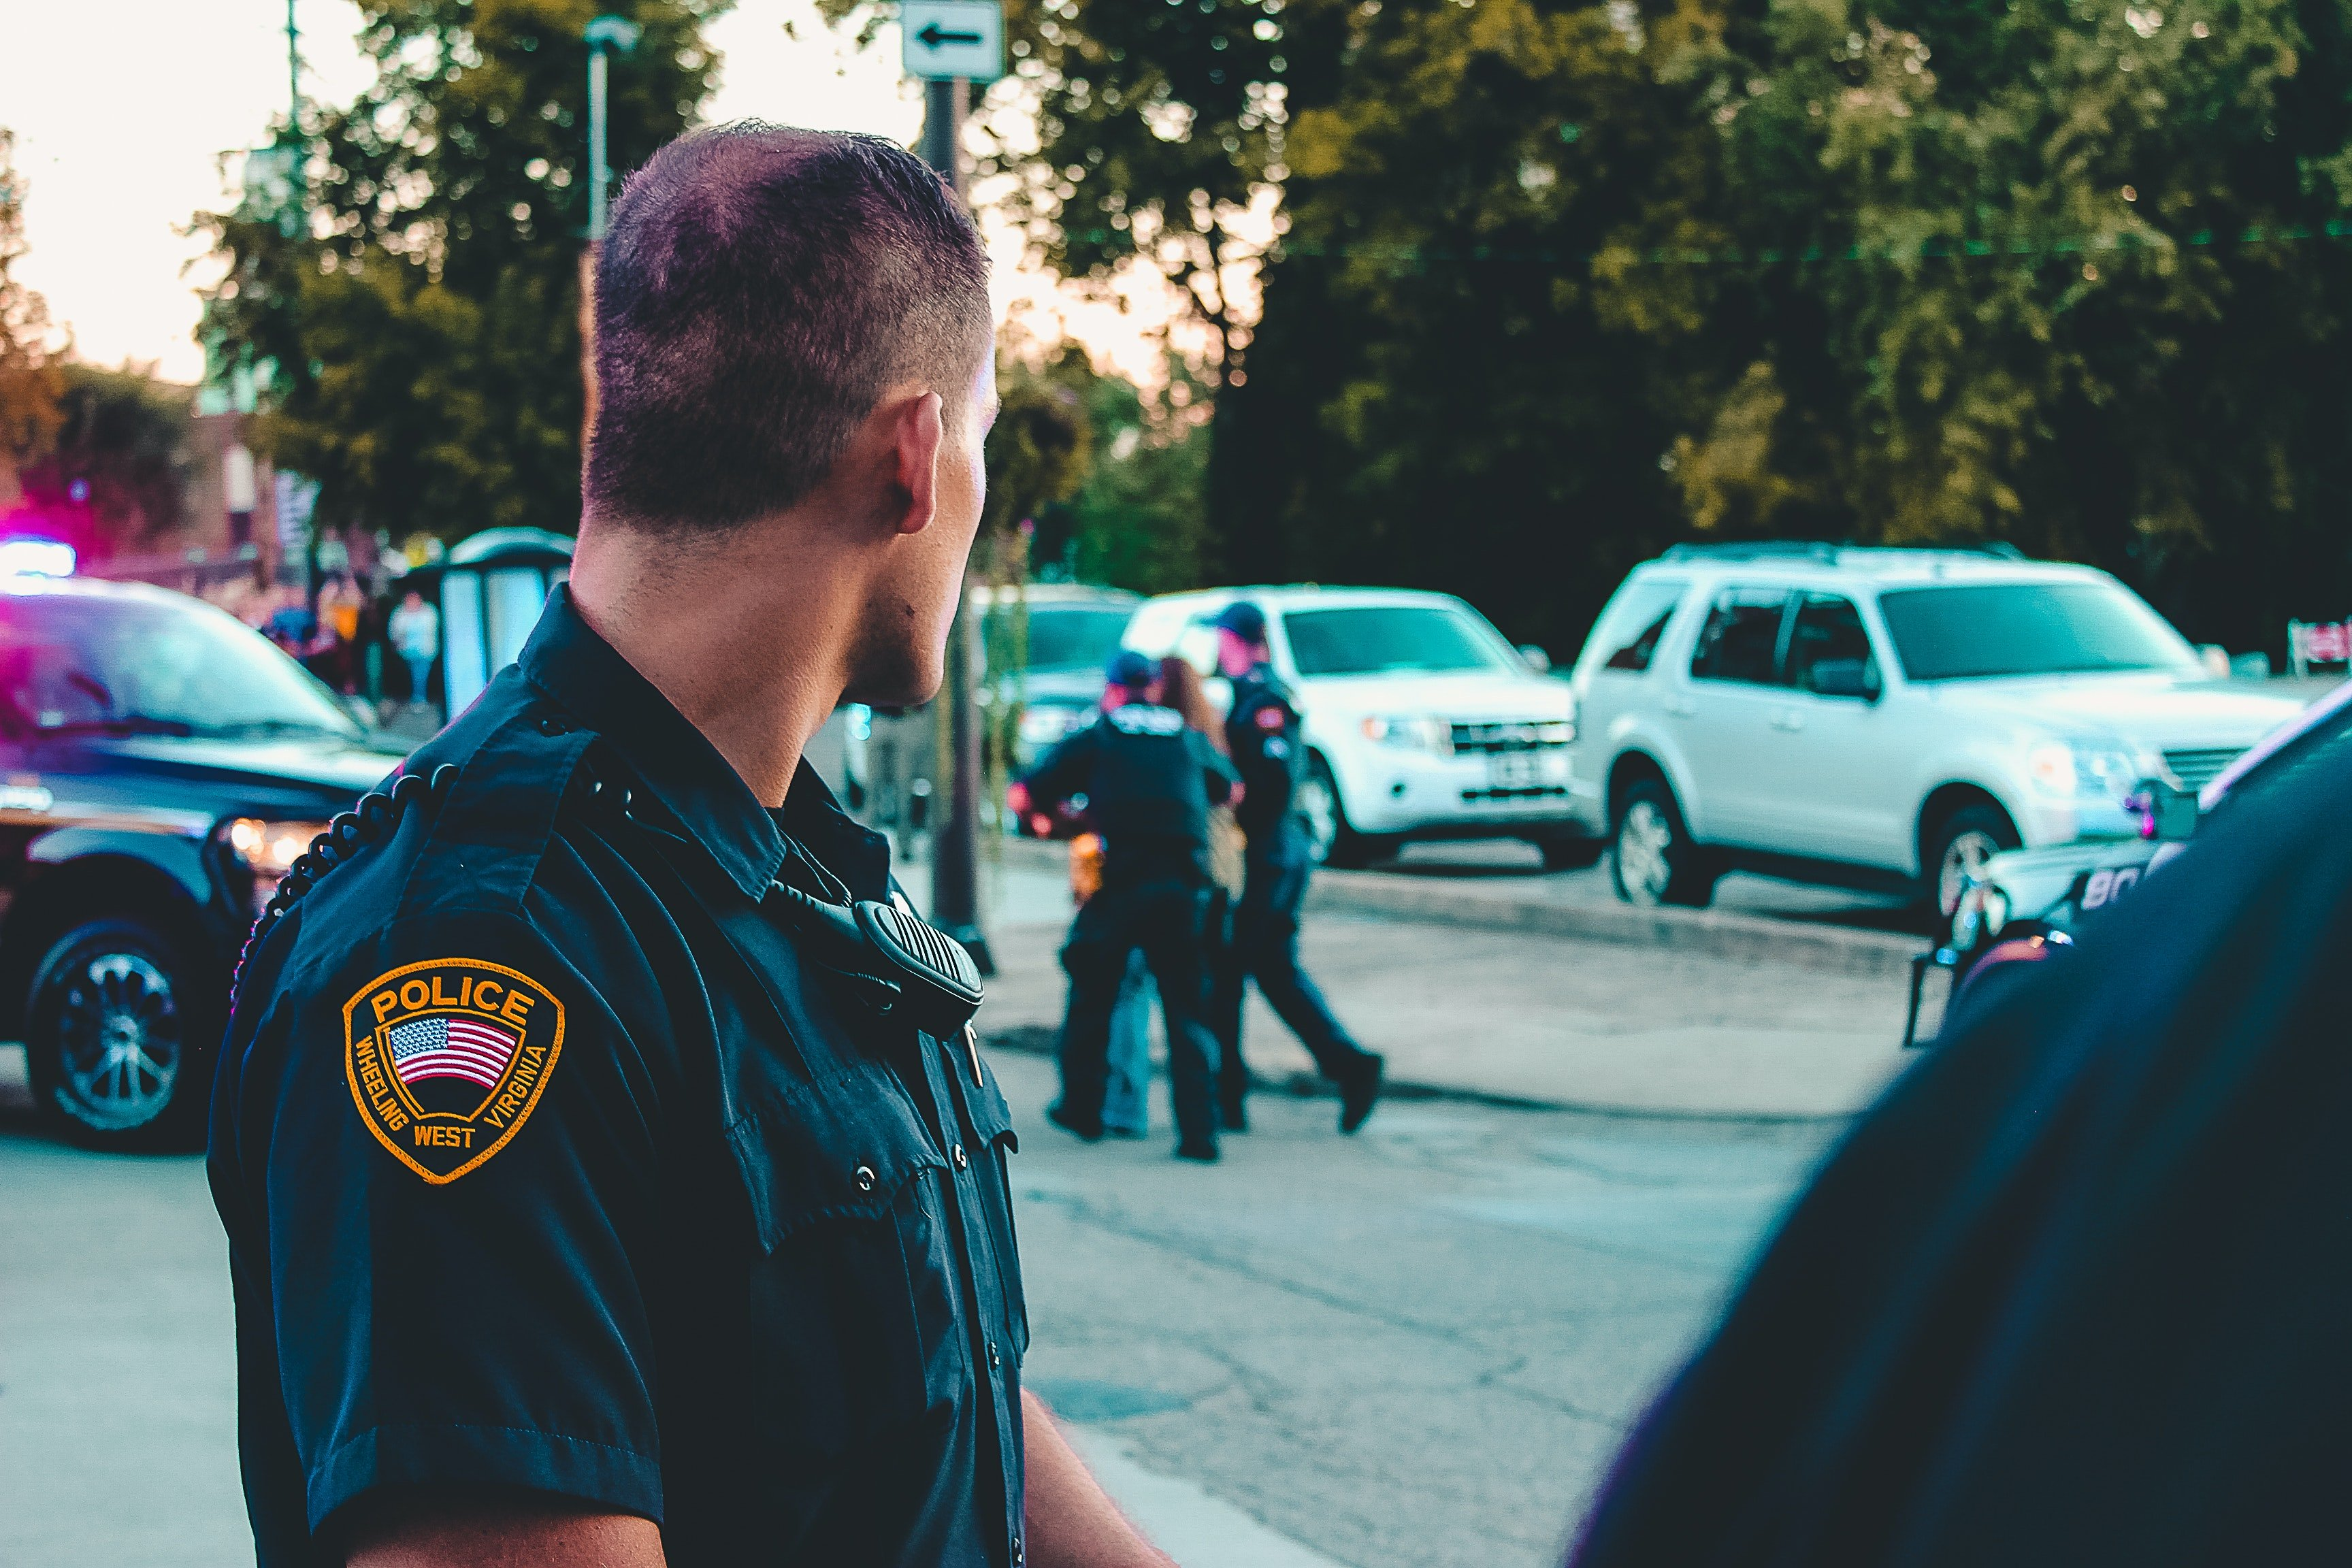 Police officer looking back toward a vehicle.   Source: Pexels/ Rosemary Ketchum